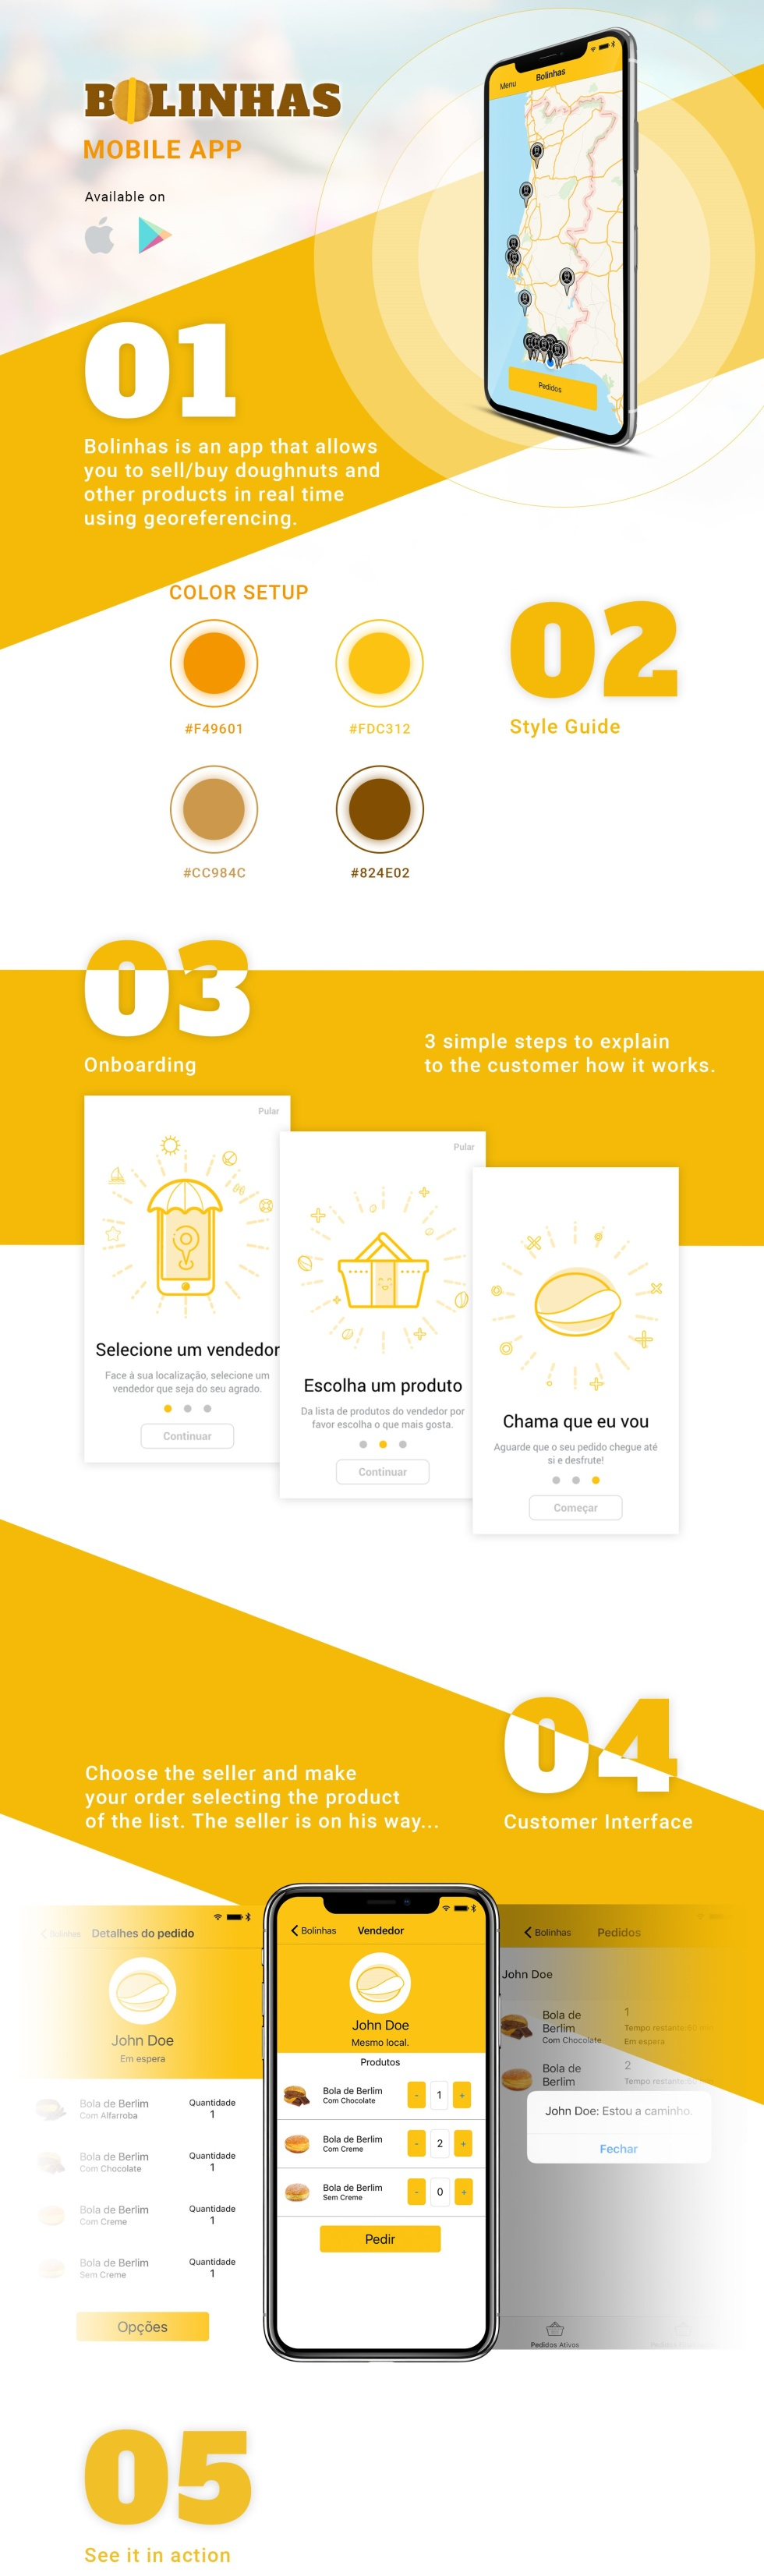 Bolinhas is a mobile app that connects buyers with sellers and wanted to become the go-to platform for small businesses. We built their entire brand, websites, mobile apps and digital strategy. The project went viral and ran in all Portuguese TV channels.